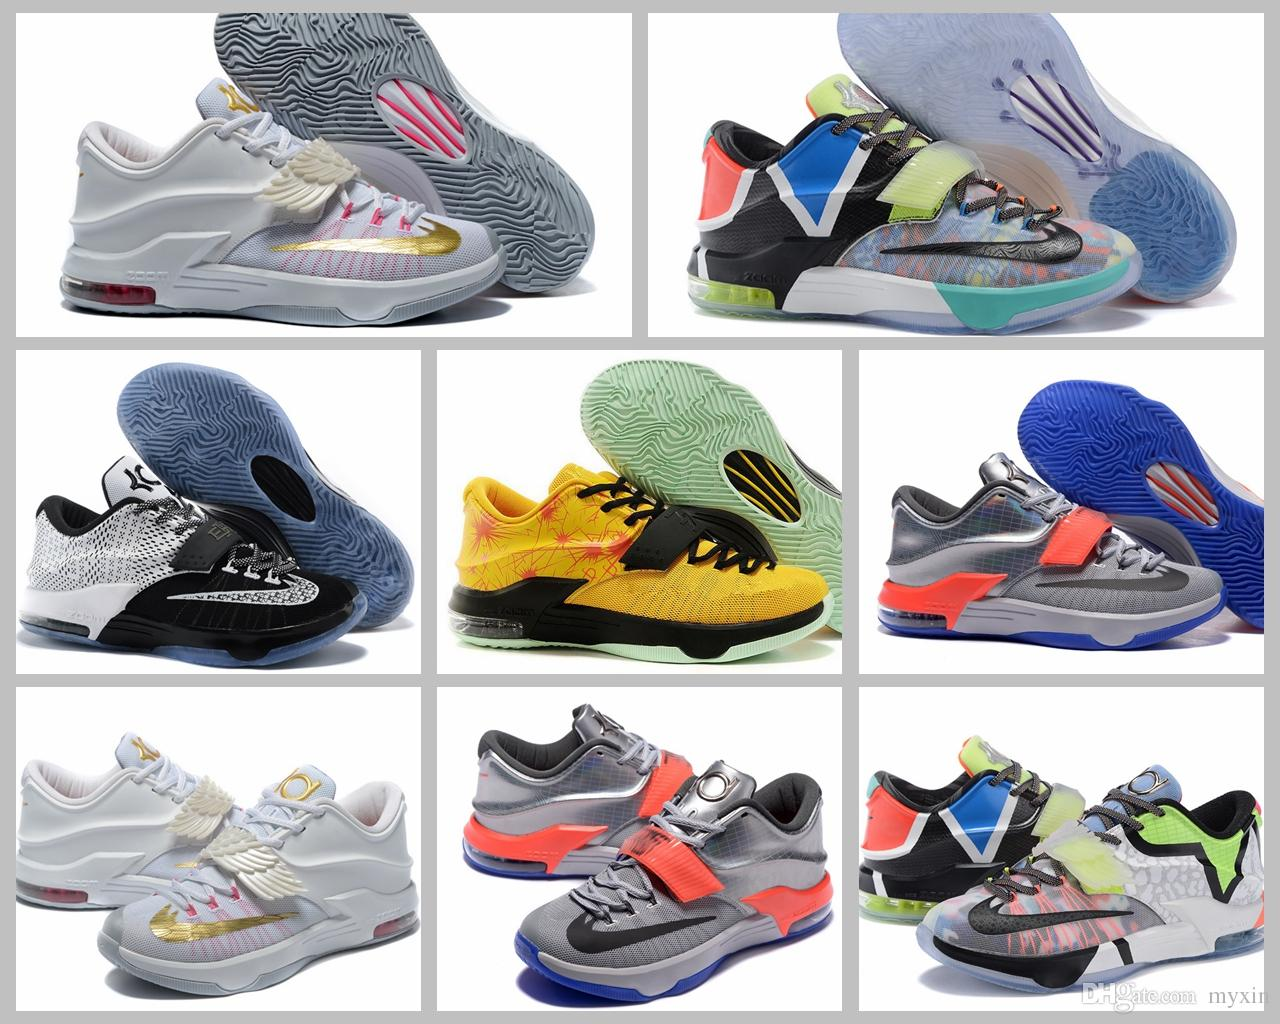 2017 Kevin Durant 7 What The Basketball Shoes For Men KD7 ...